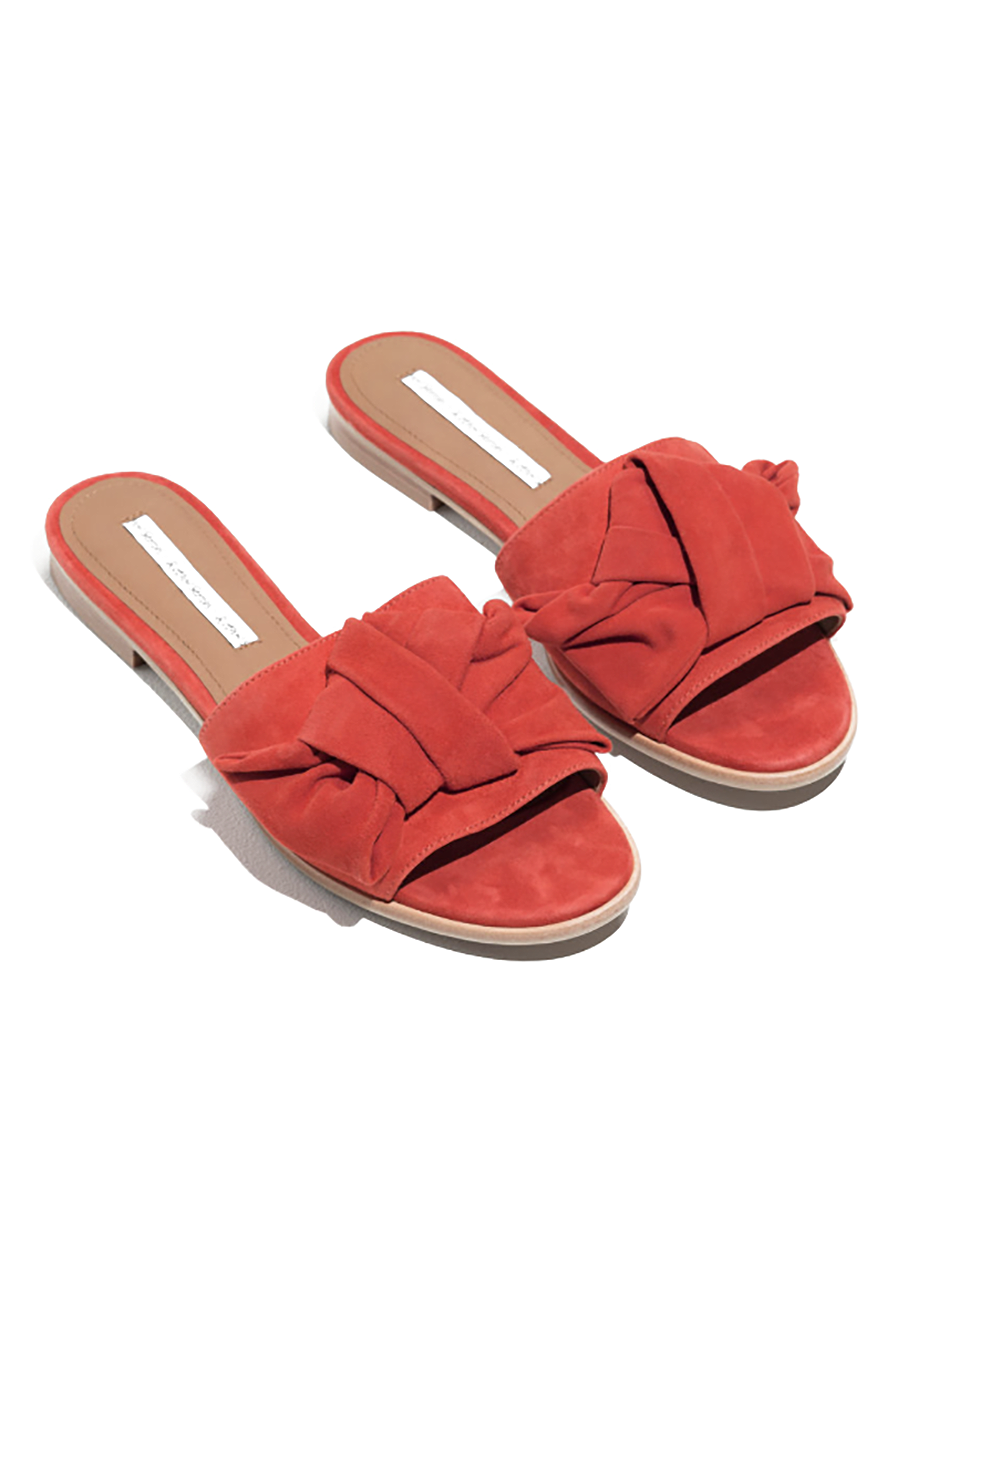 Bright Slides & Other Stories, $38 SHOP IT Slip into these to add an easy pop of color to any outfit.